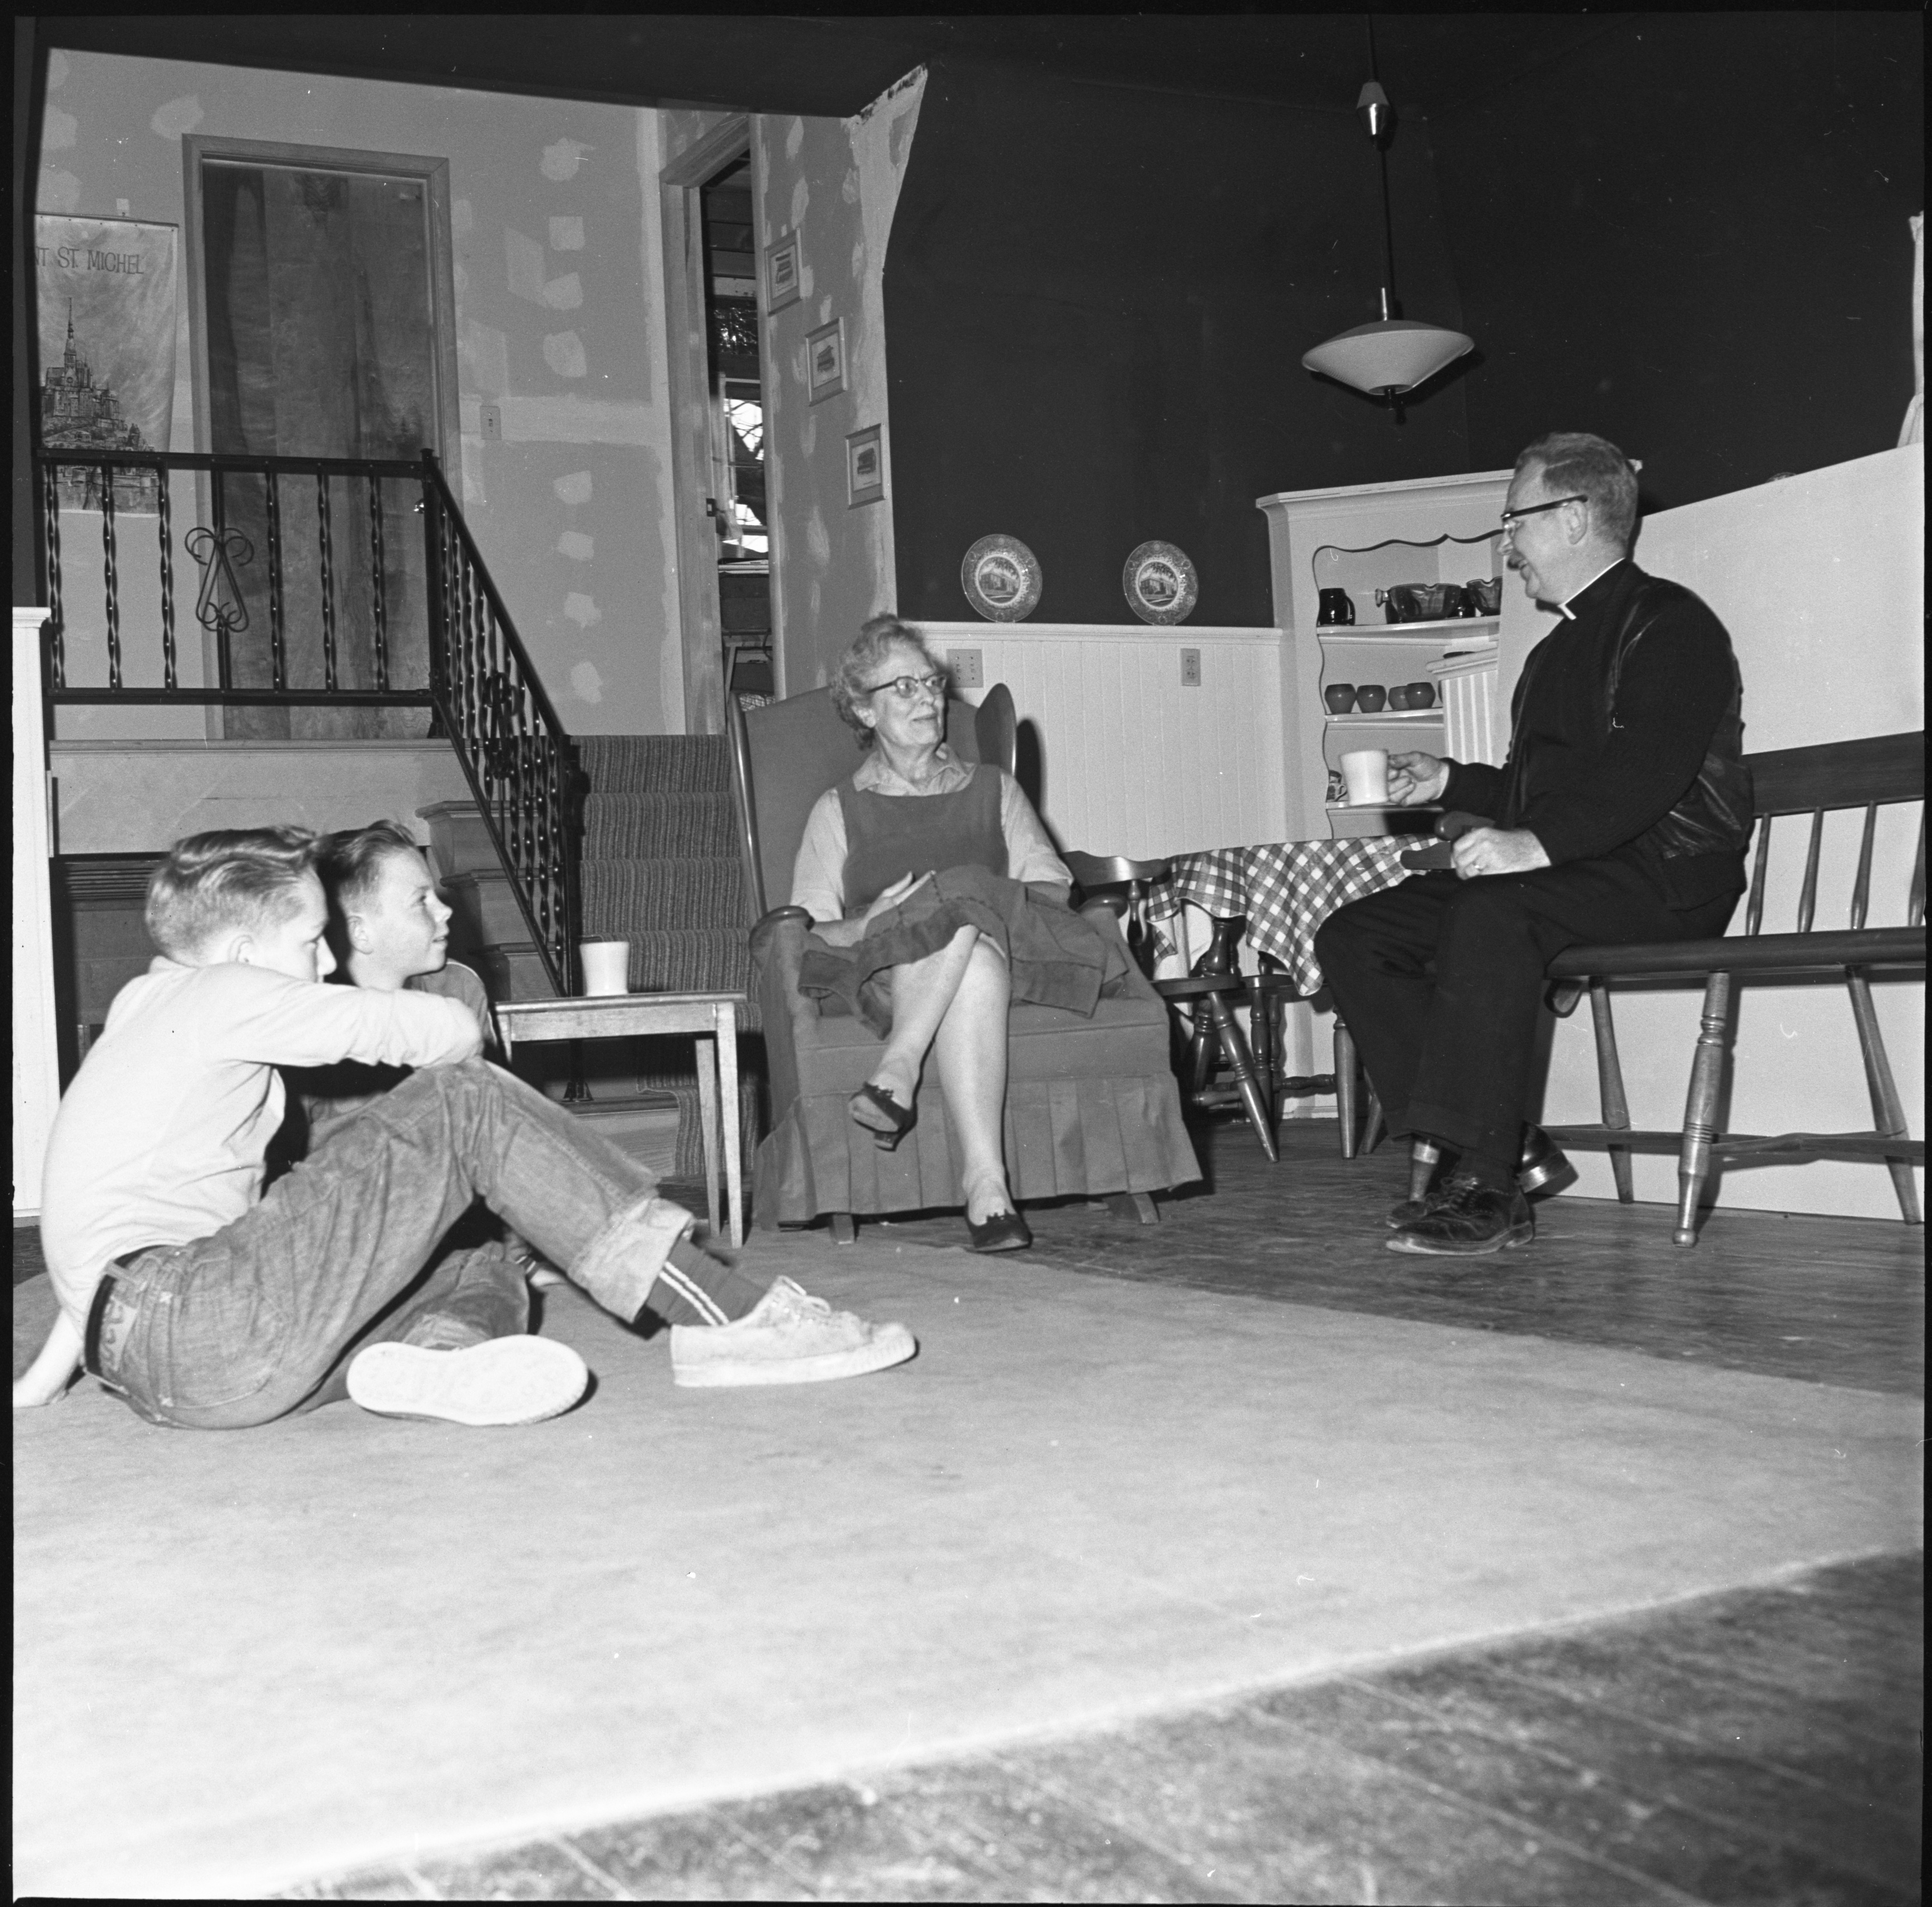 The Miller Family Relaxes In Their Renovated Schoolhouse Home, December 1960 image